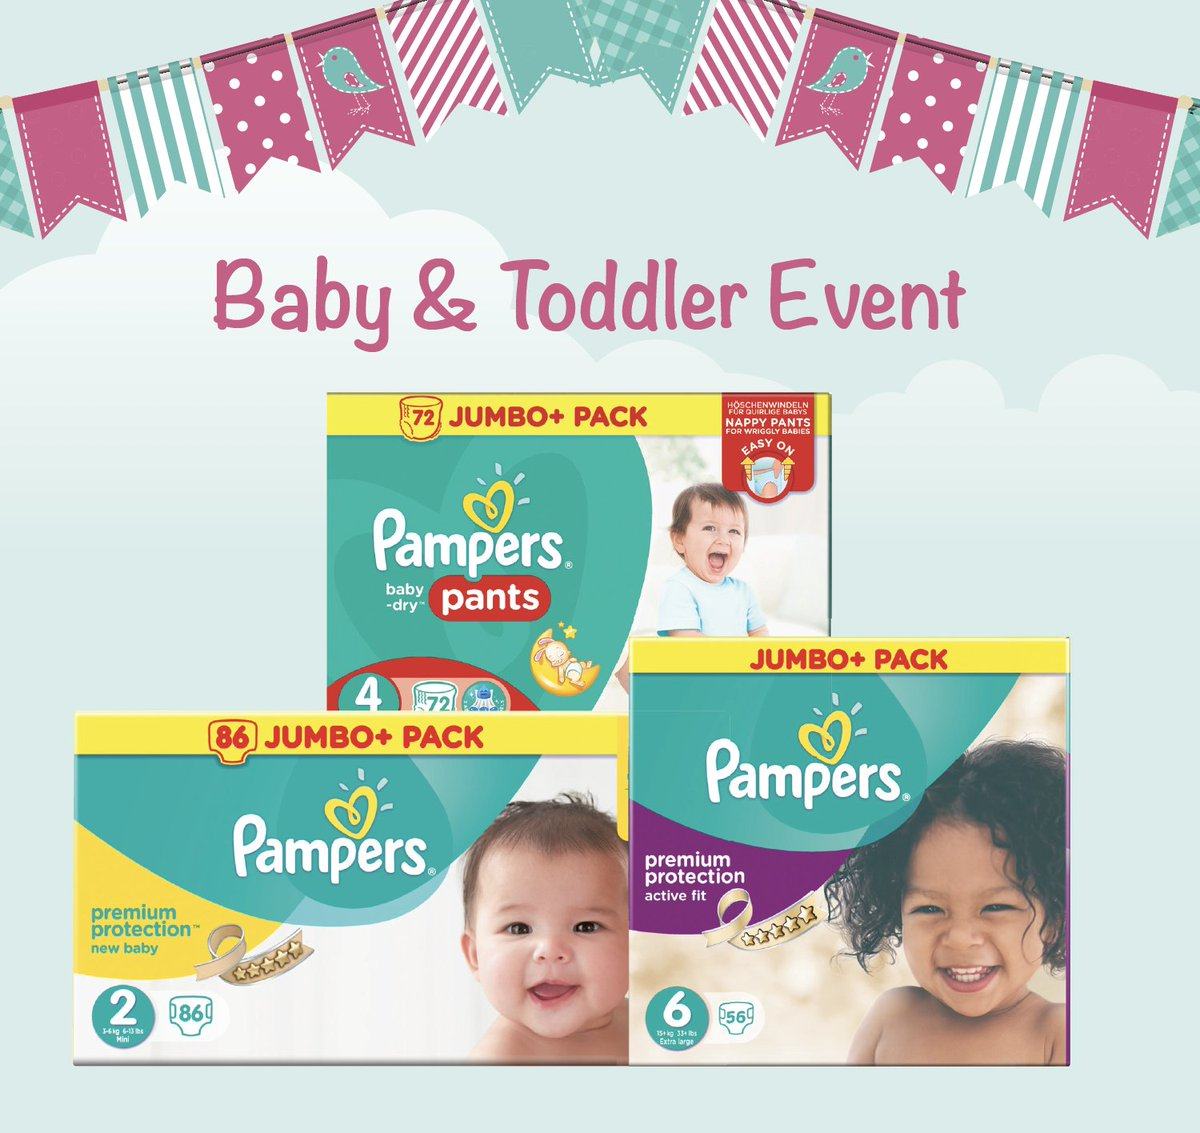 Only €10 each PAMPERS JUMBO + ACTIVE FIT/ACTIVE FIT PANTS/ BABY DRY PANTS/PREMIUM PROTECTION https://t.co/Rd1rb4MCDu